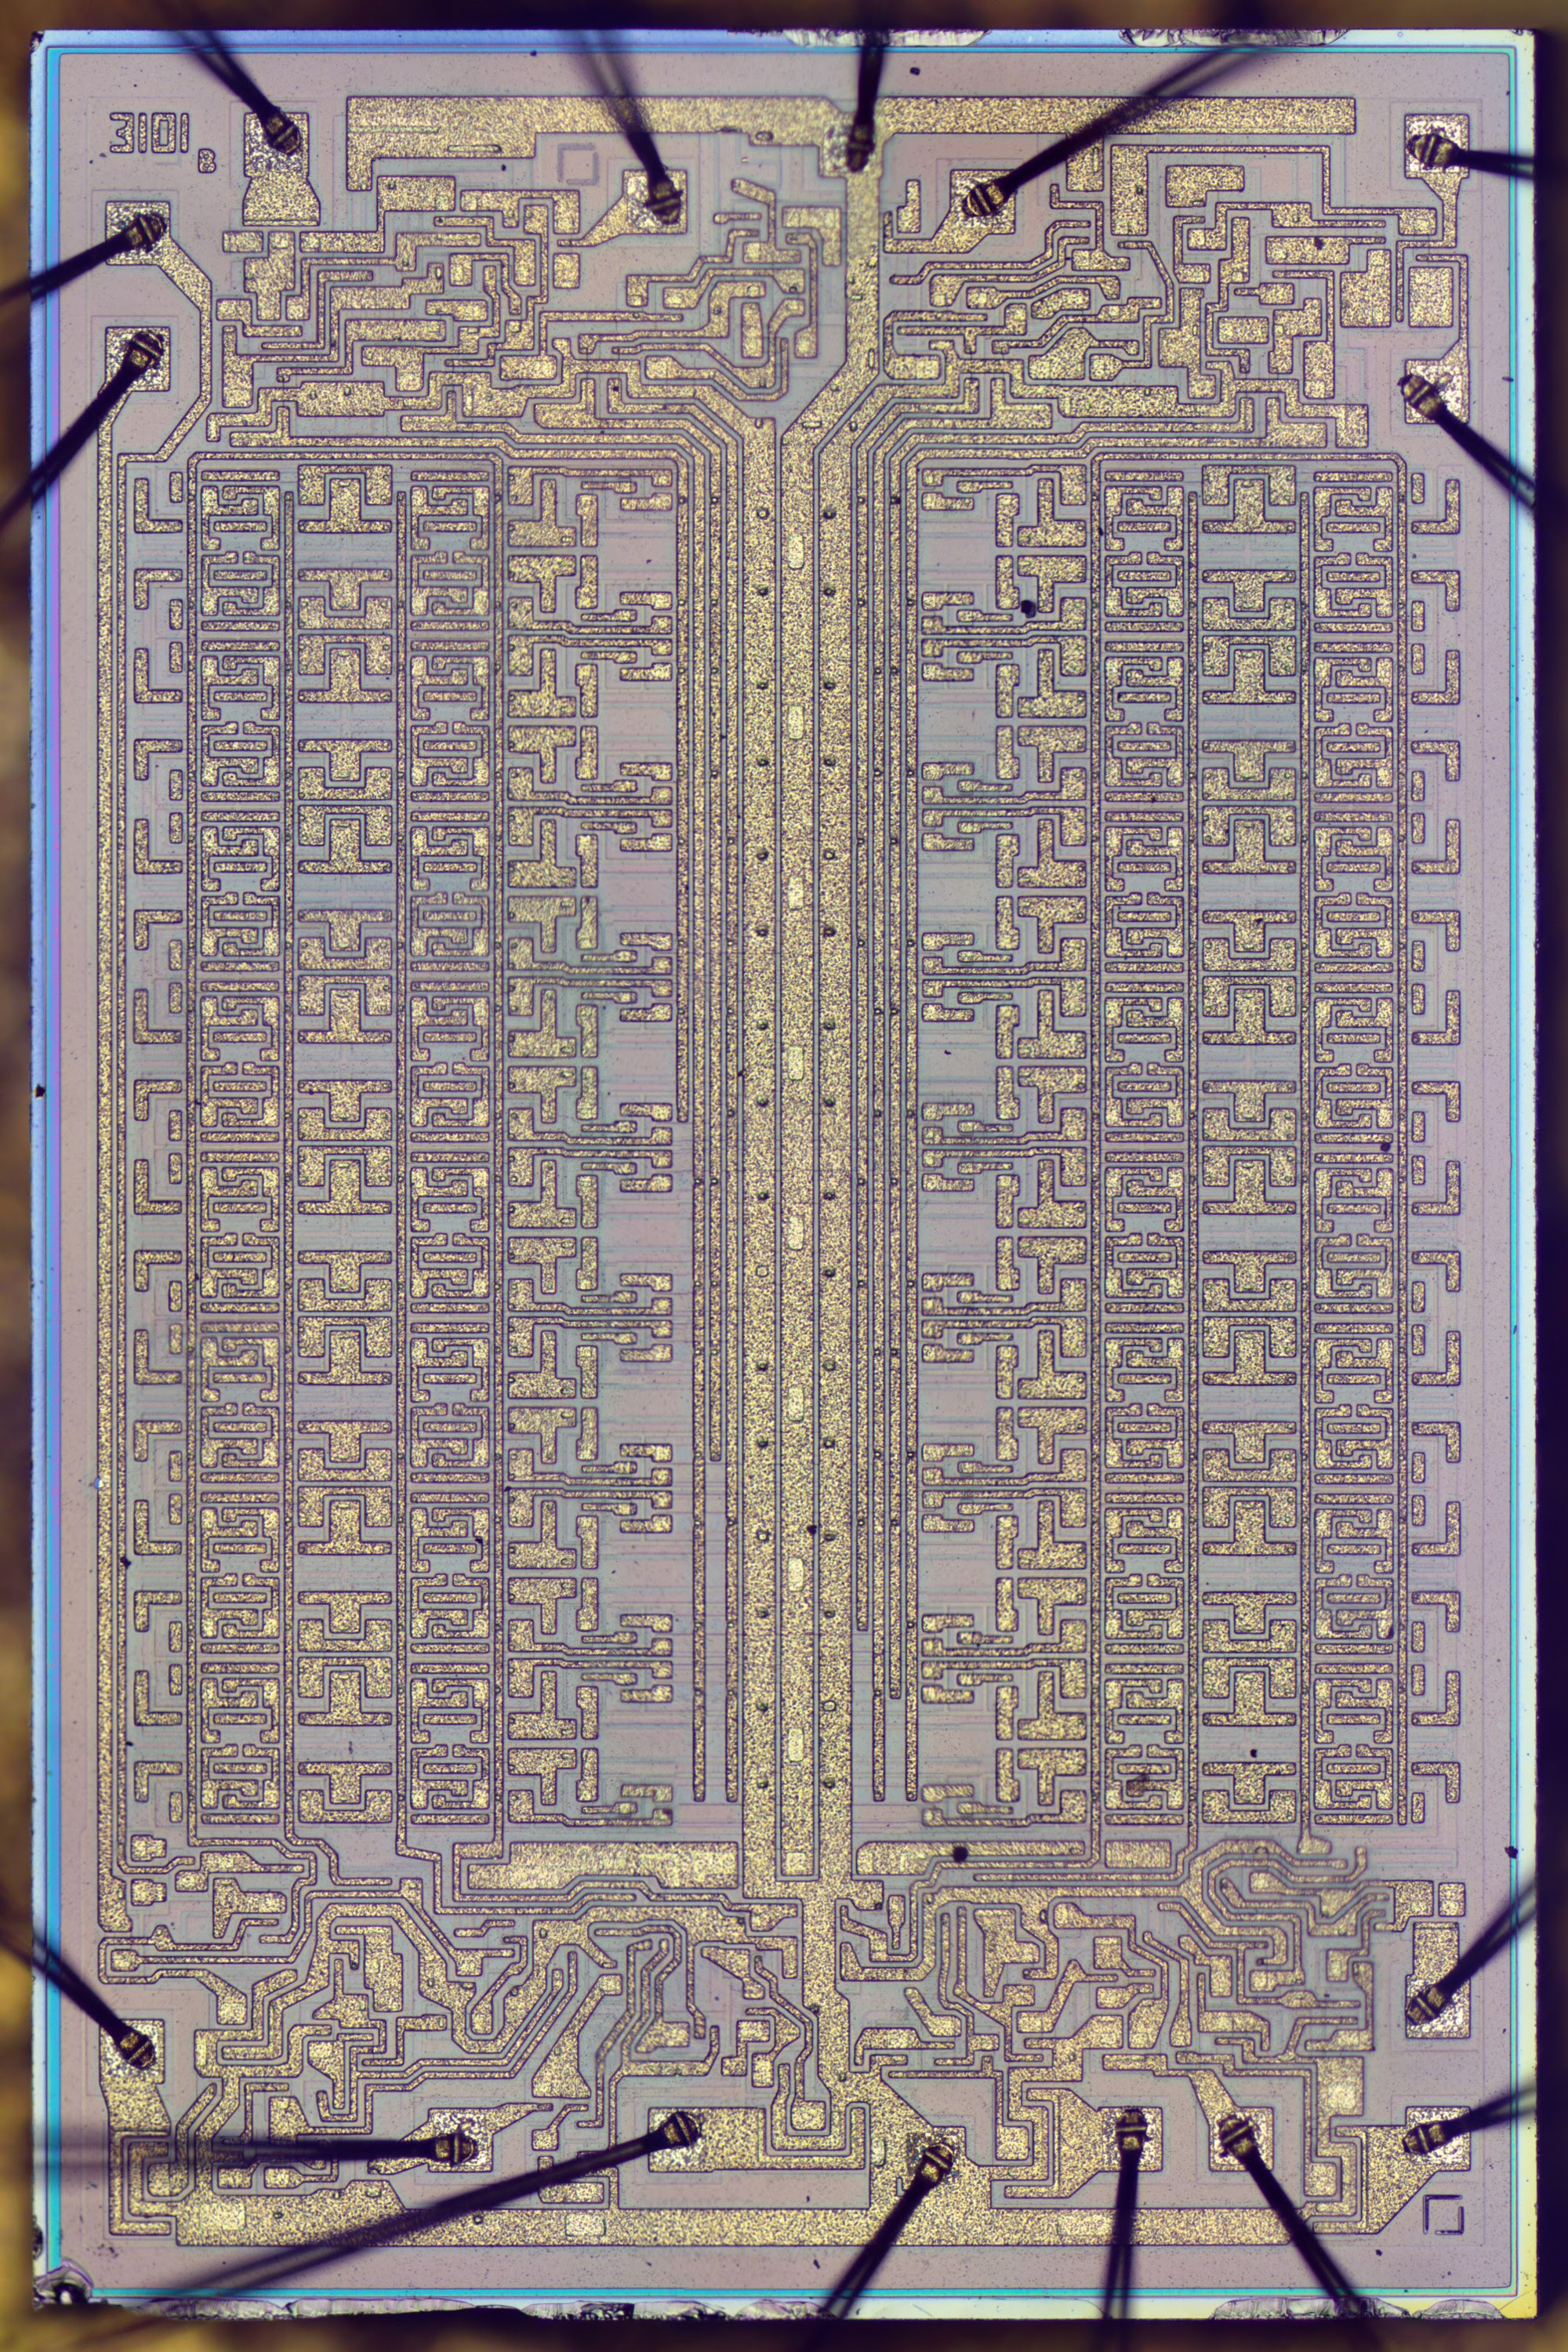 Inside Intels First Product The 3101 Ram Chip Held Just 64 Bits This Is A Diode Transistor Logic Dtl Nand Gate Circuit Using Bipolar Die Photo Of Intel Bit Click For Larger